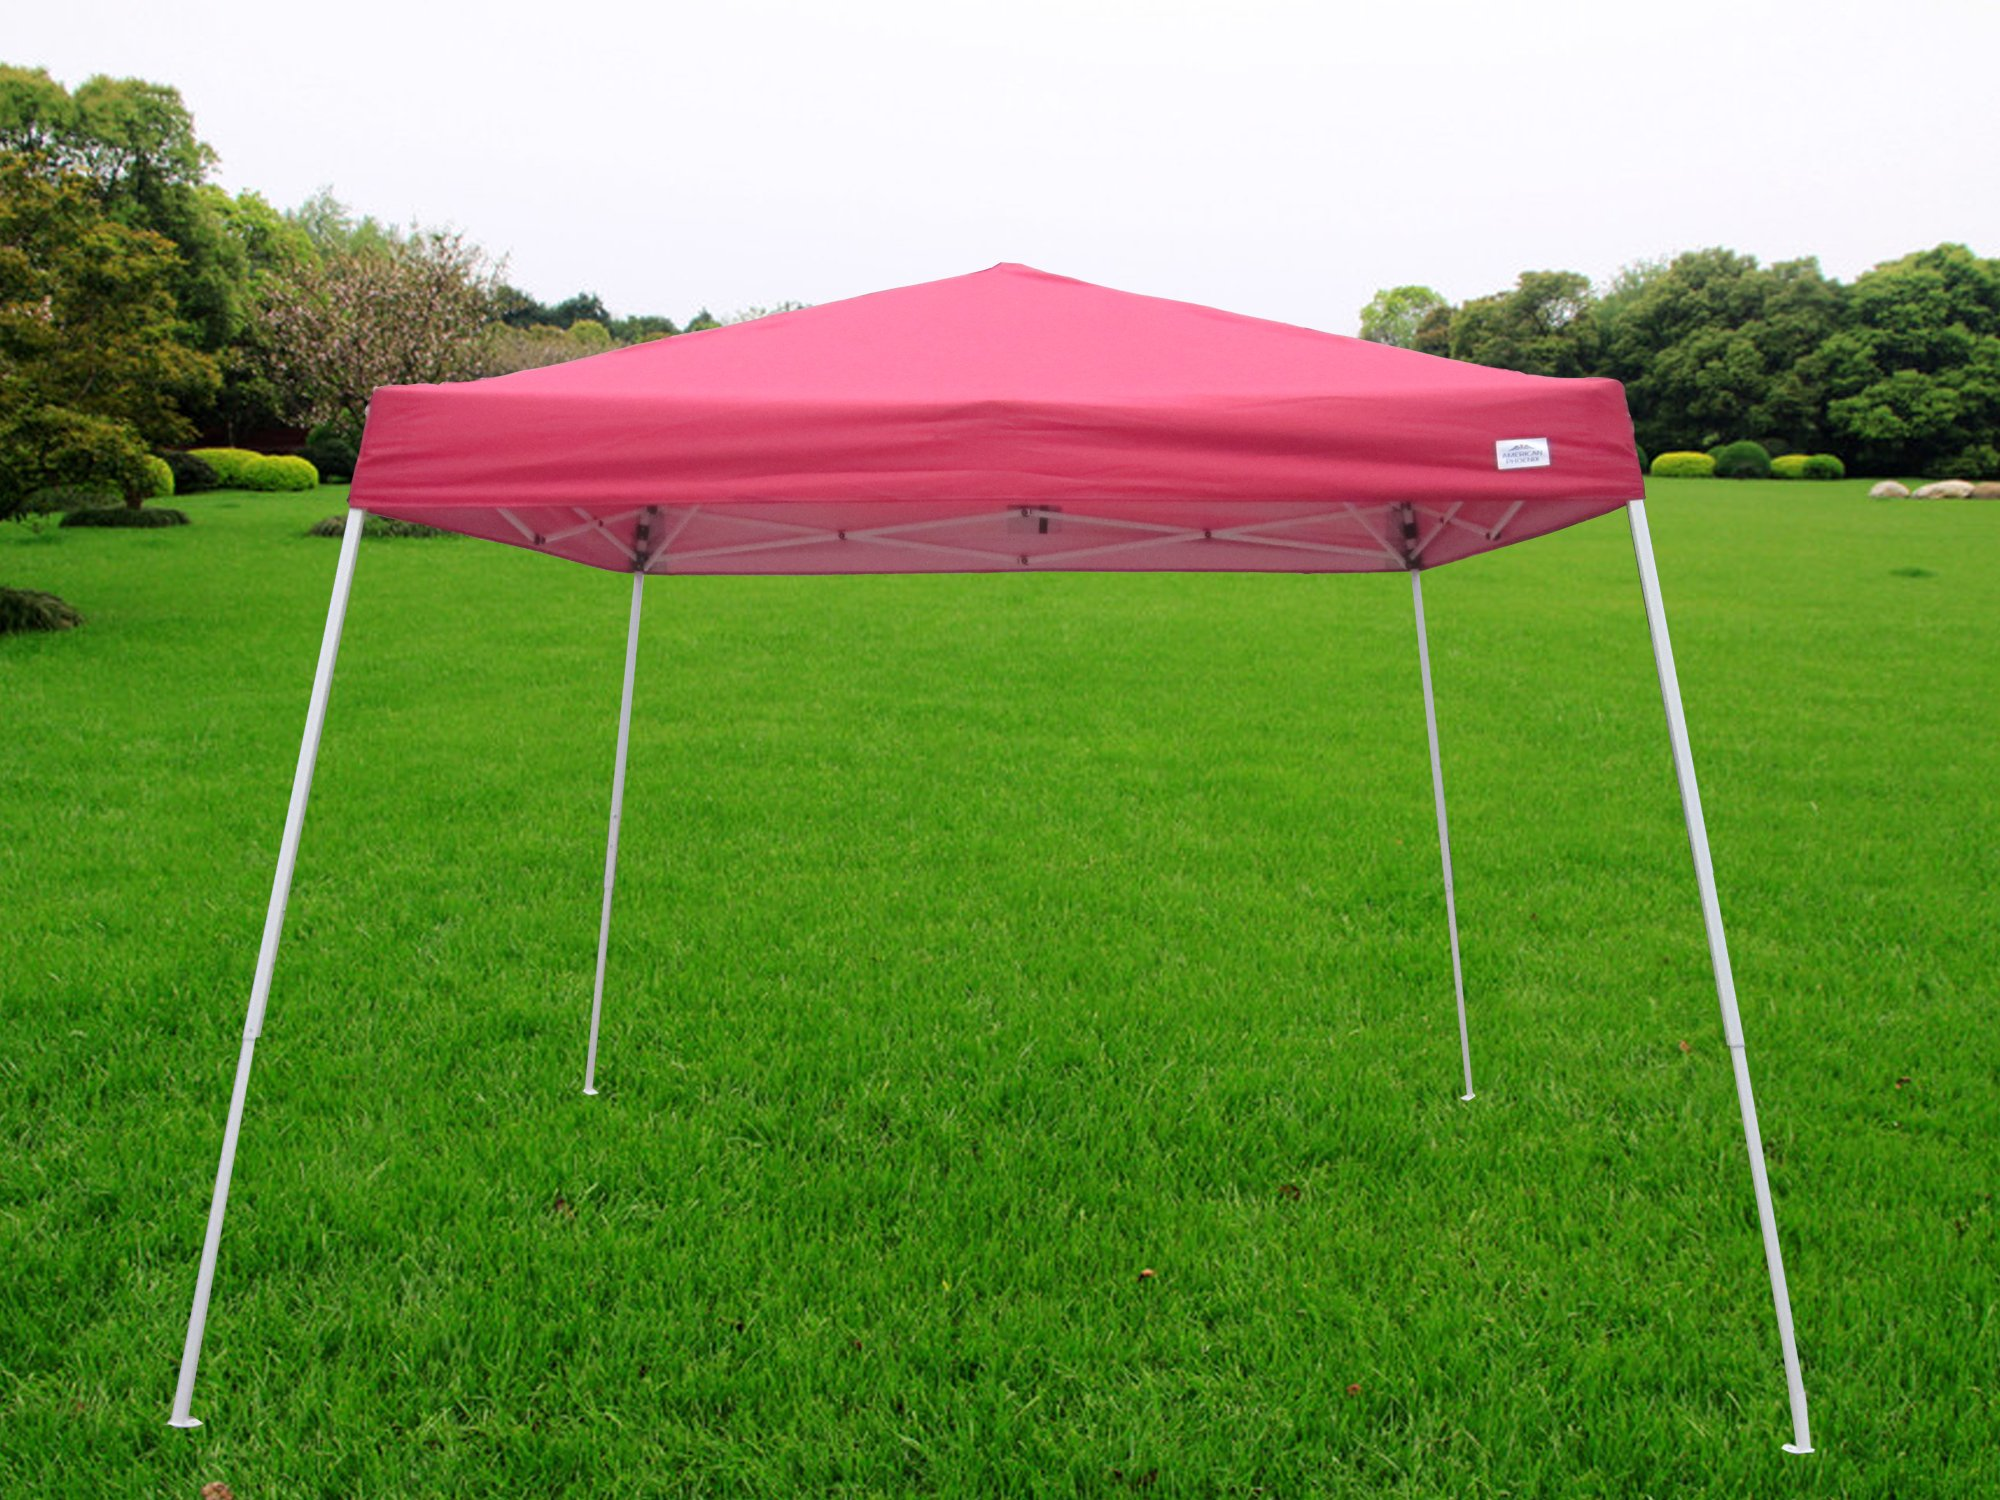 American Phoenix 10x10 Multi Color [Slant Leg][White Frame ] Light Weight Portable Event Canopy Tent. Shade Commercial Party Canopy tent Easy Pop Up (Red, 10x10)